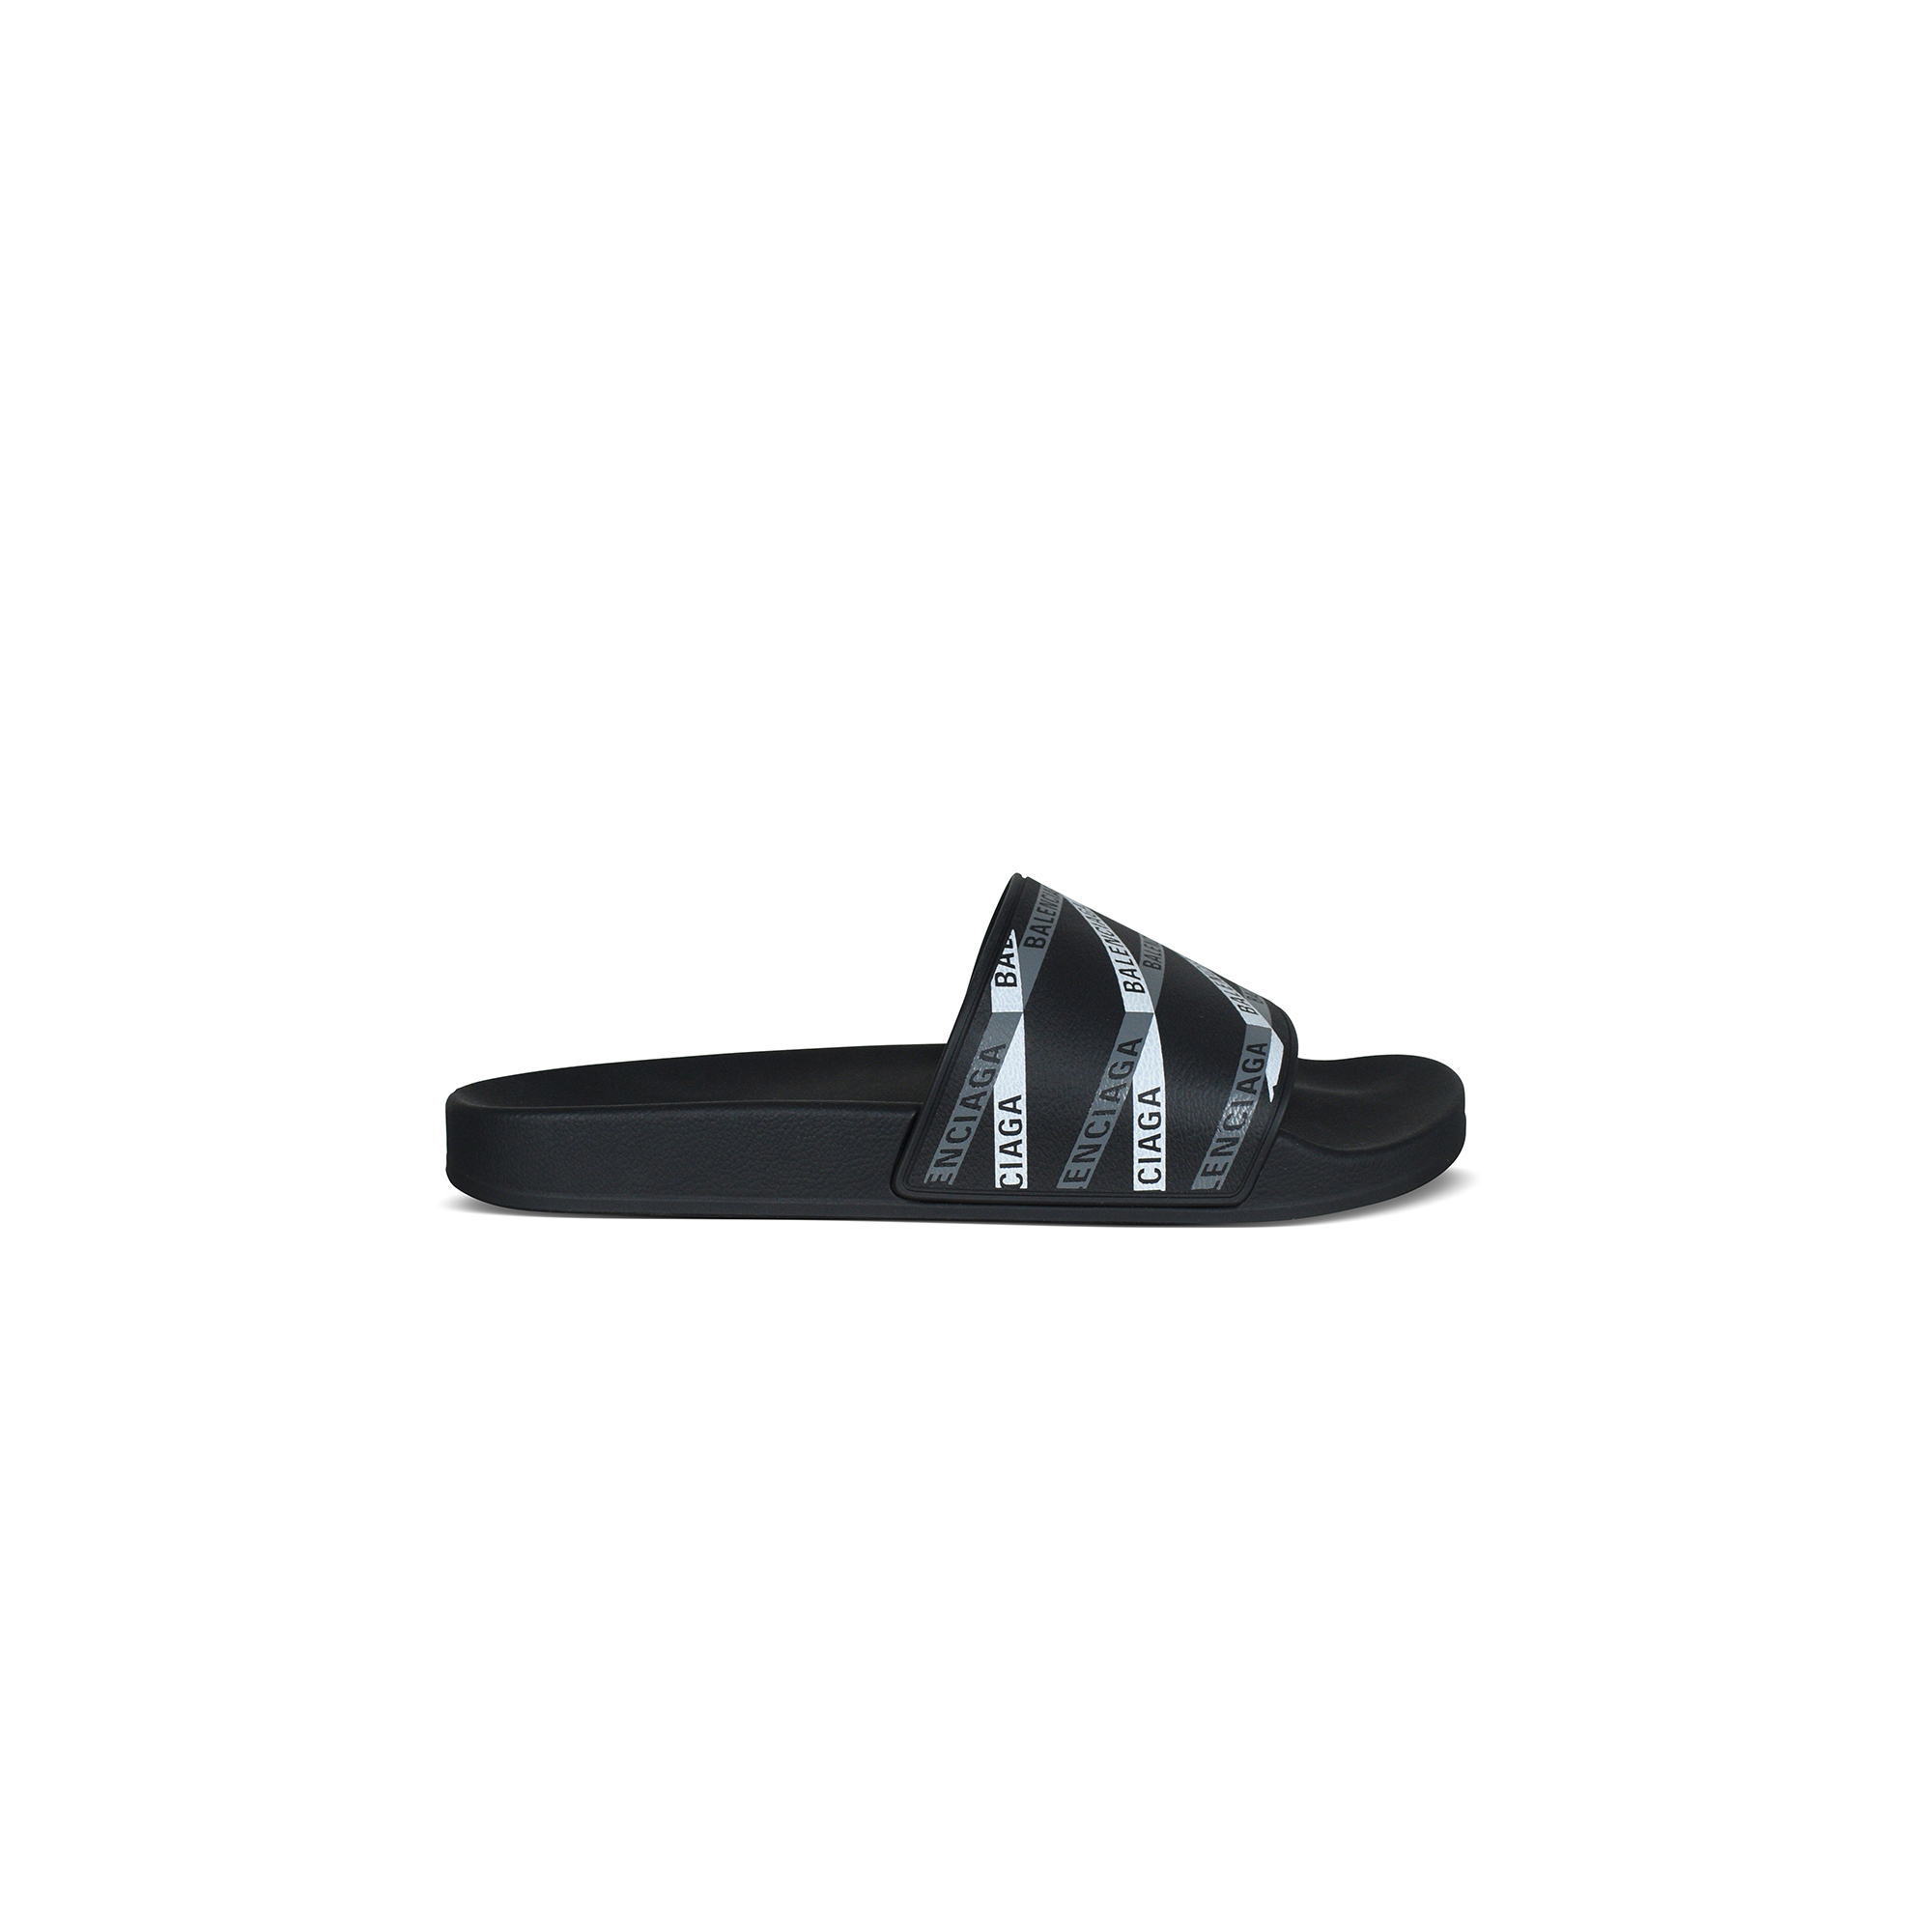 Black Balenciaga slides.